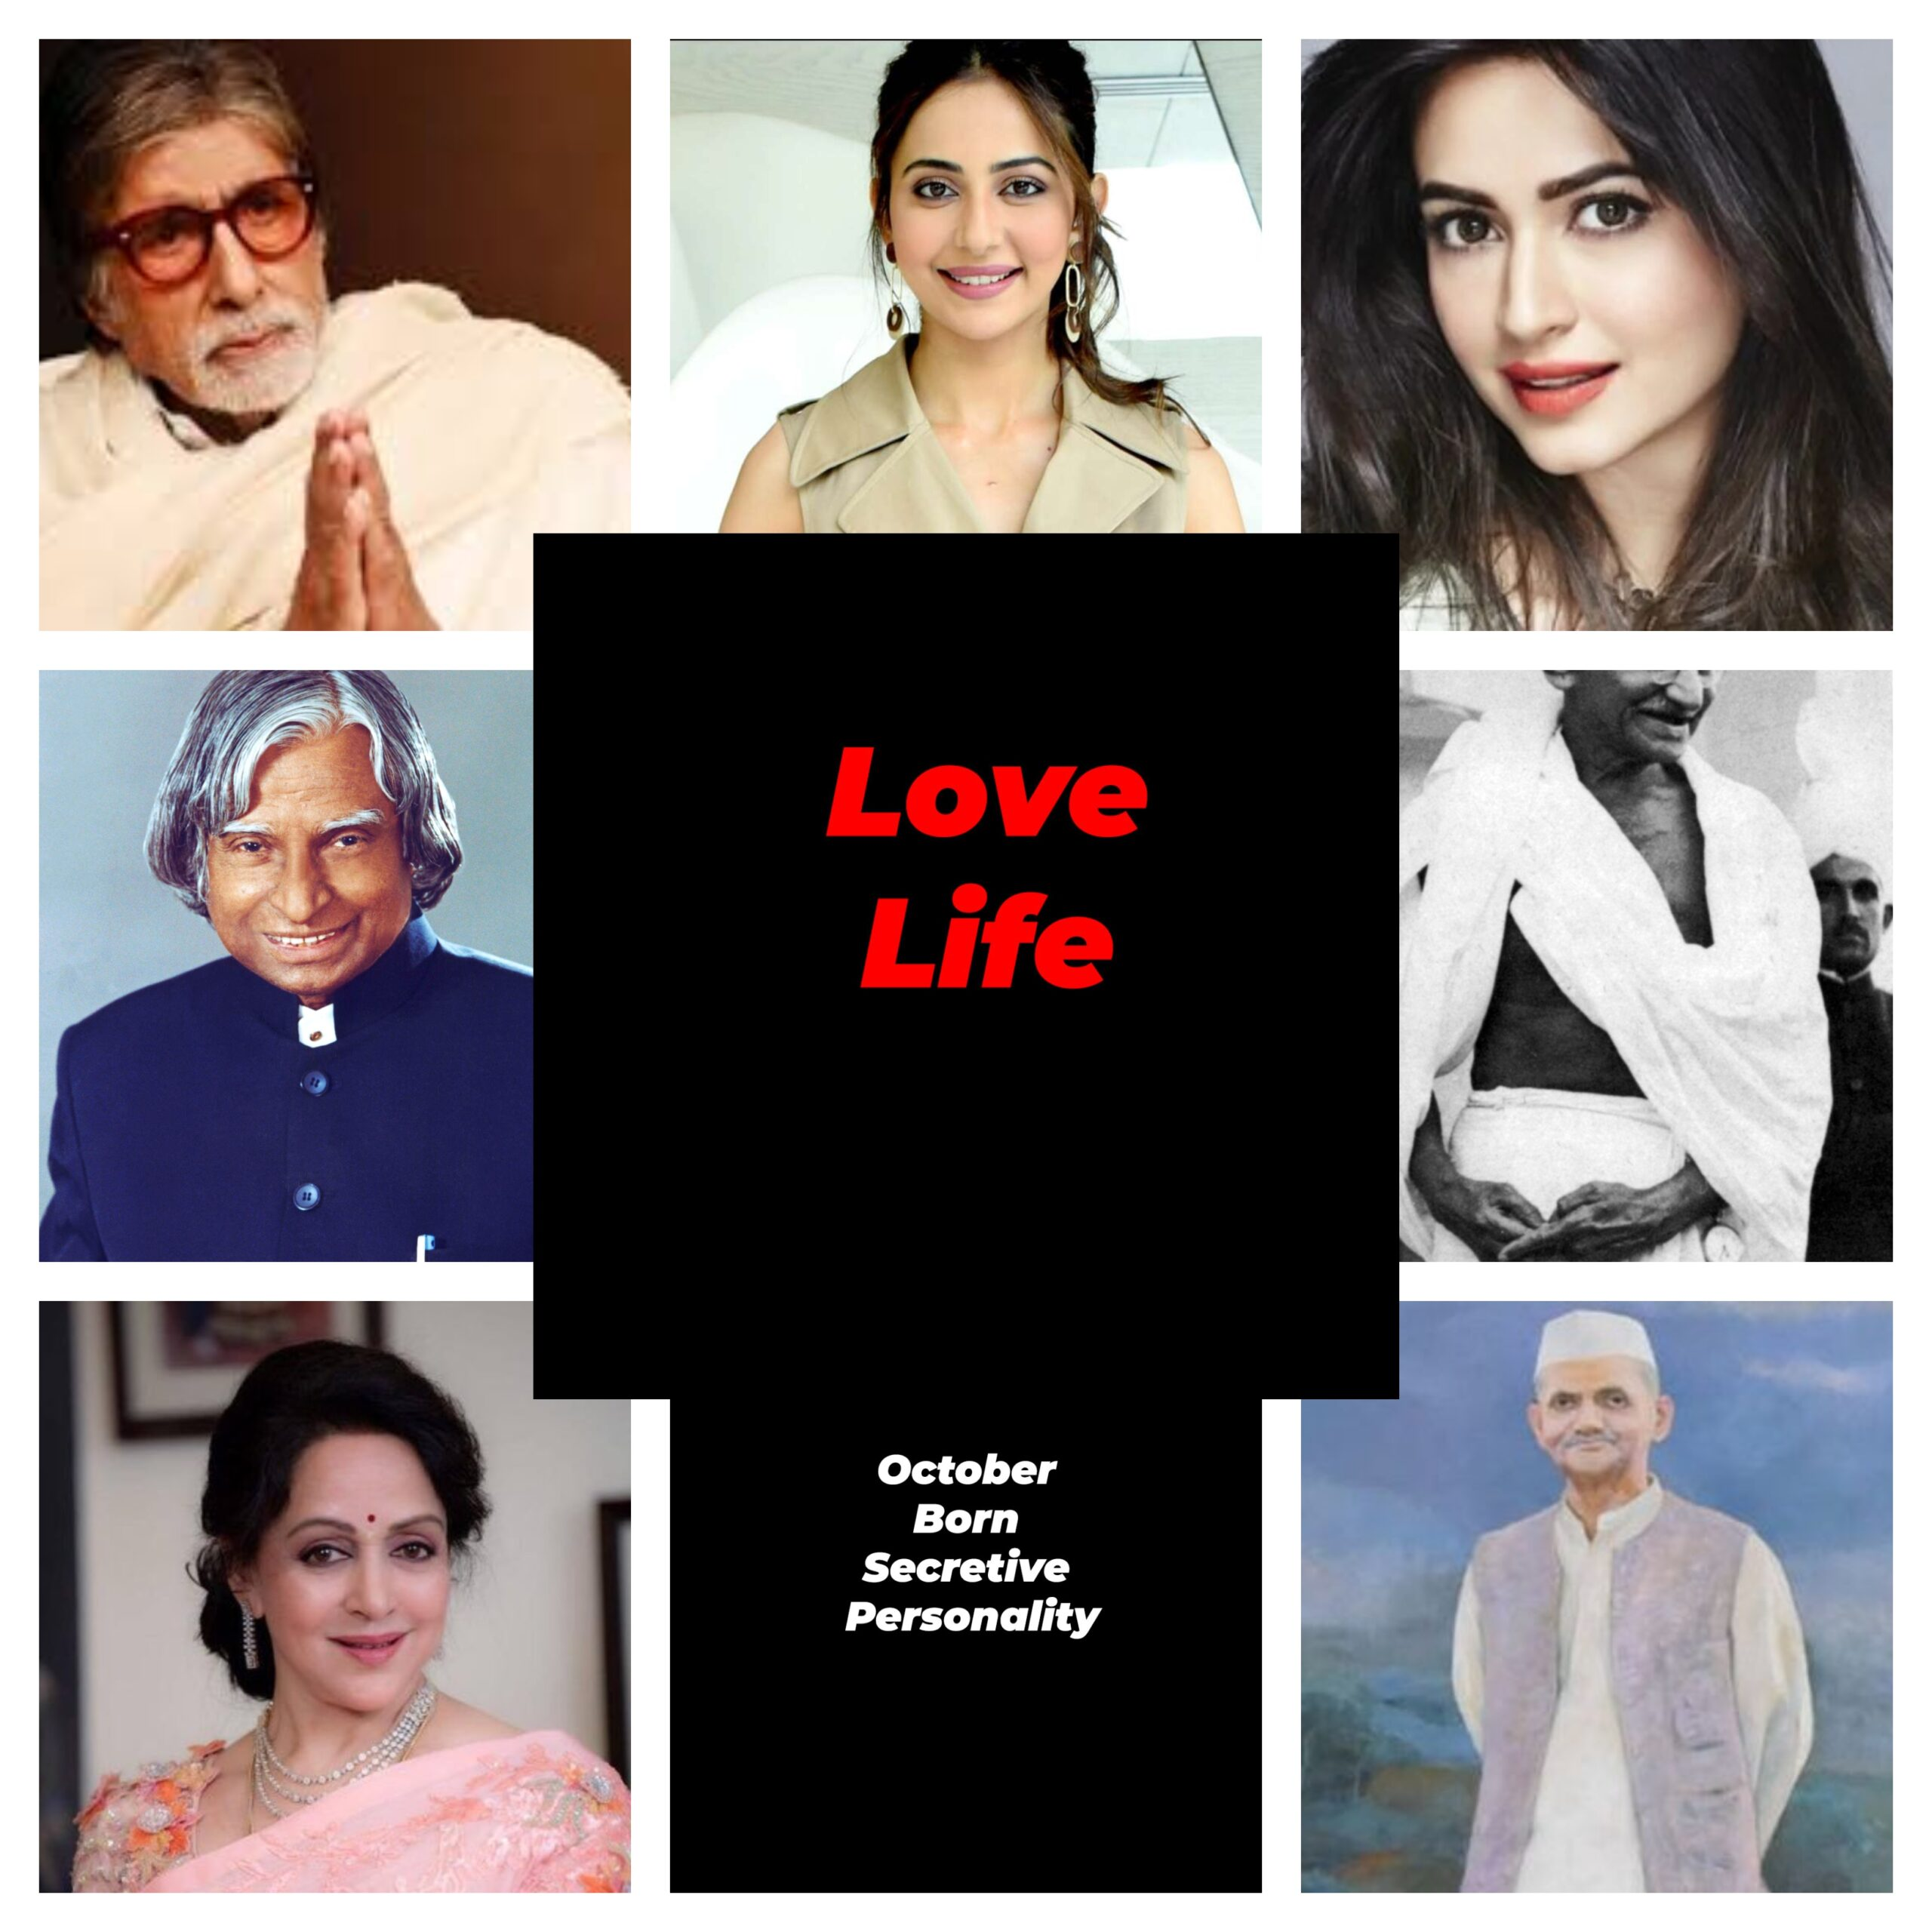 October Born Personalities Collage of 7 personalities - Amitabh, APJ Kalam, Gandhi, Lal Bahadur Shastri, Actress Kirti, Rakul, and Hema Malini